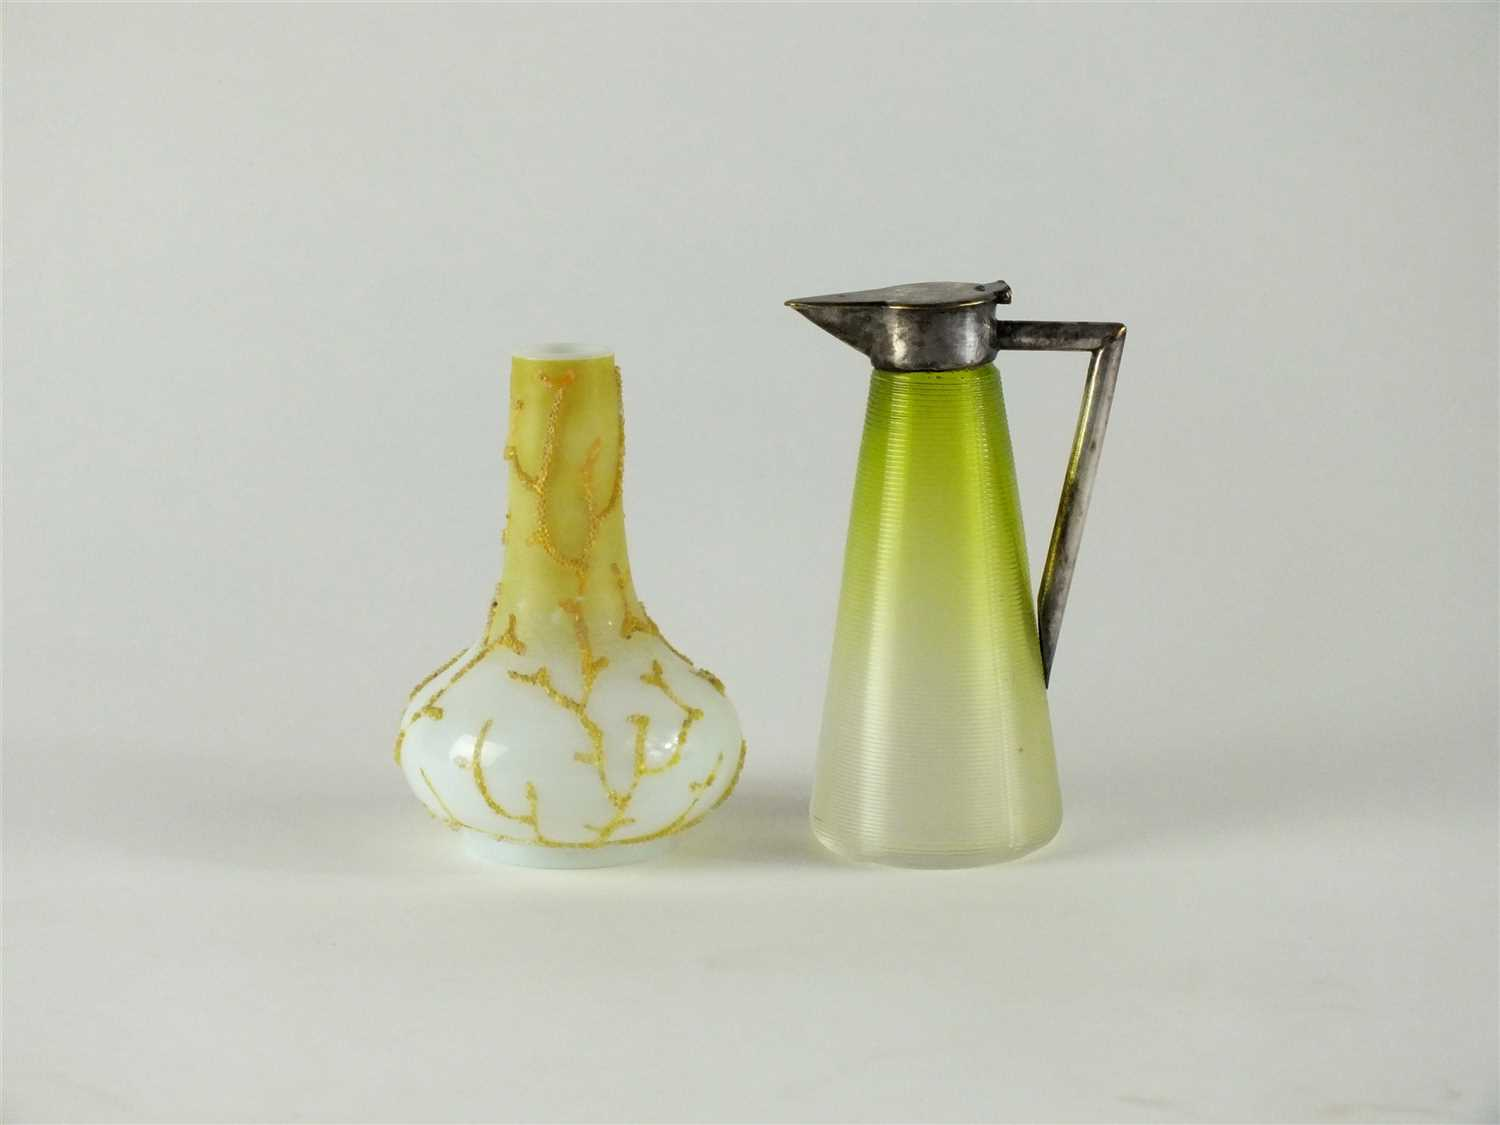 Lot 122 - A Thomas Webb Coralene vase and Hukin and Heath jug